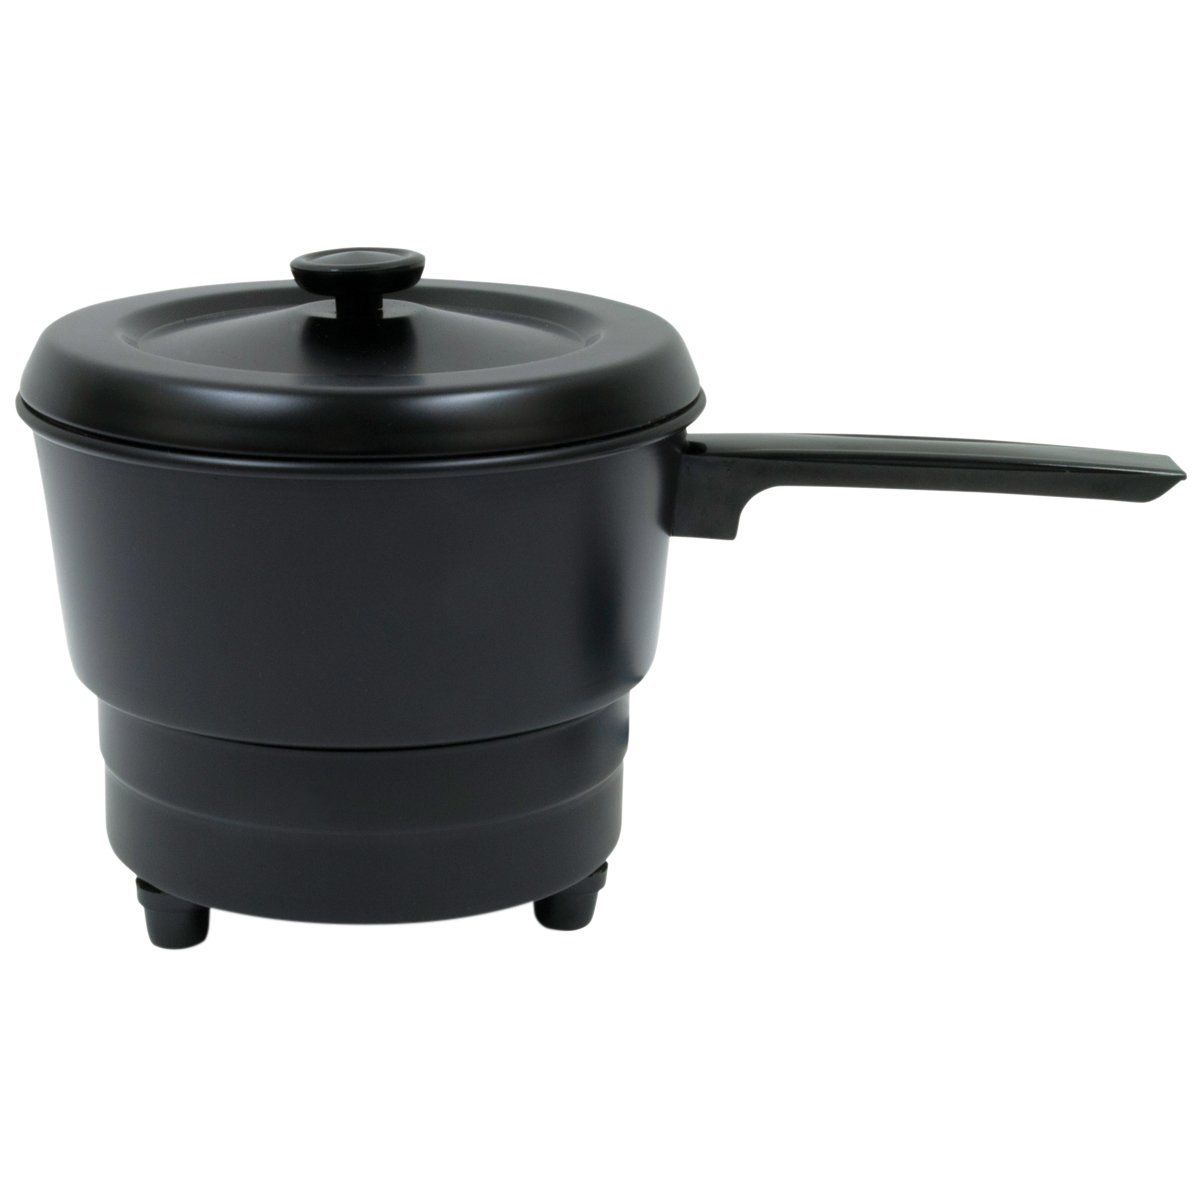 RoadPro 12V, Sauce Pan and Popcorn Maker